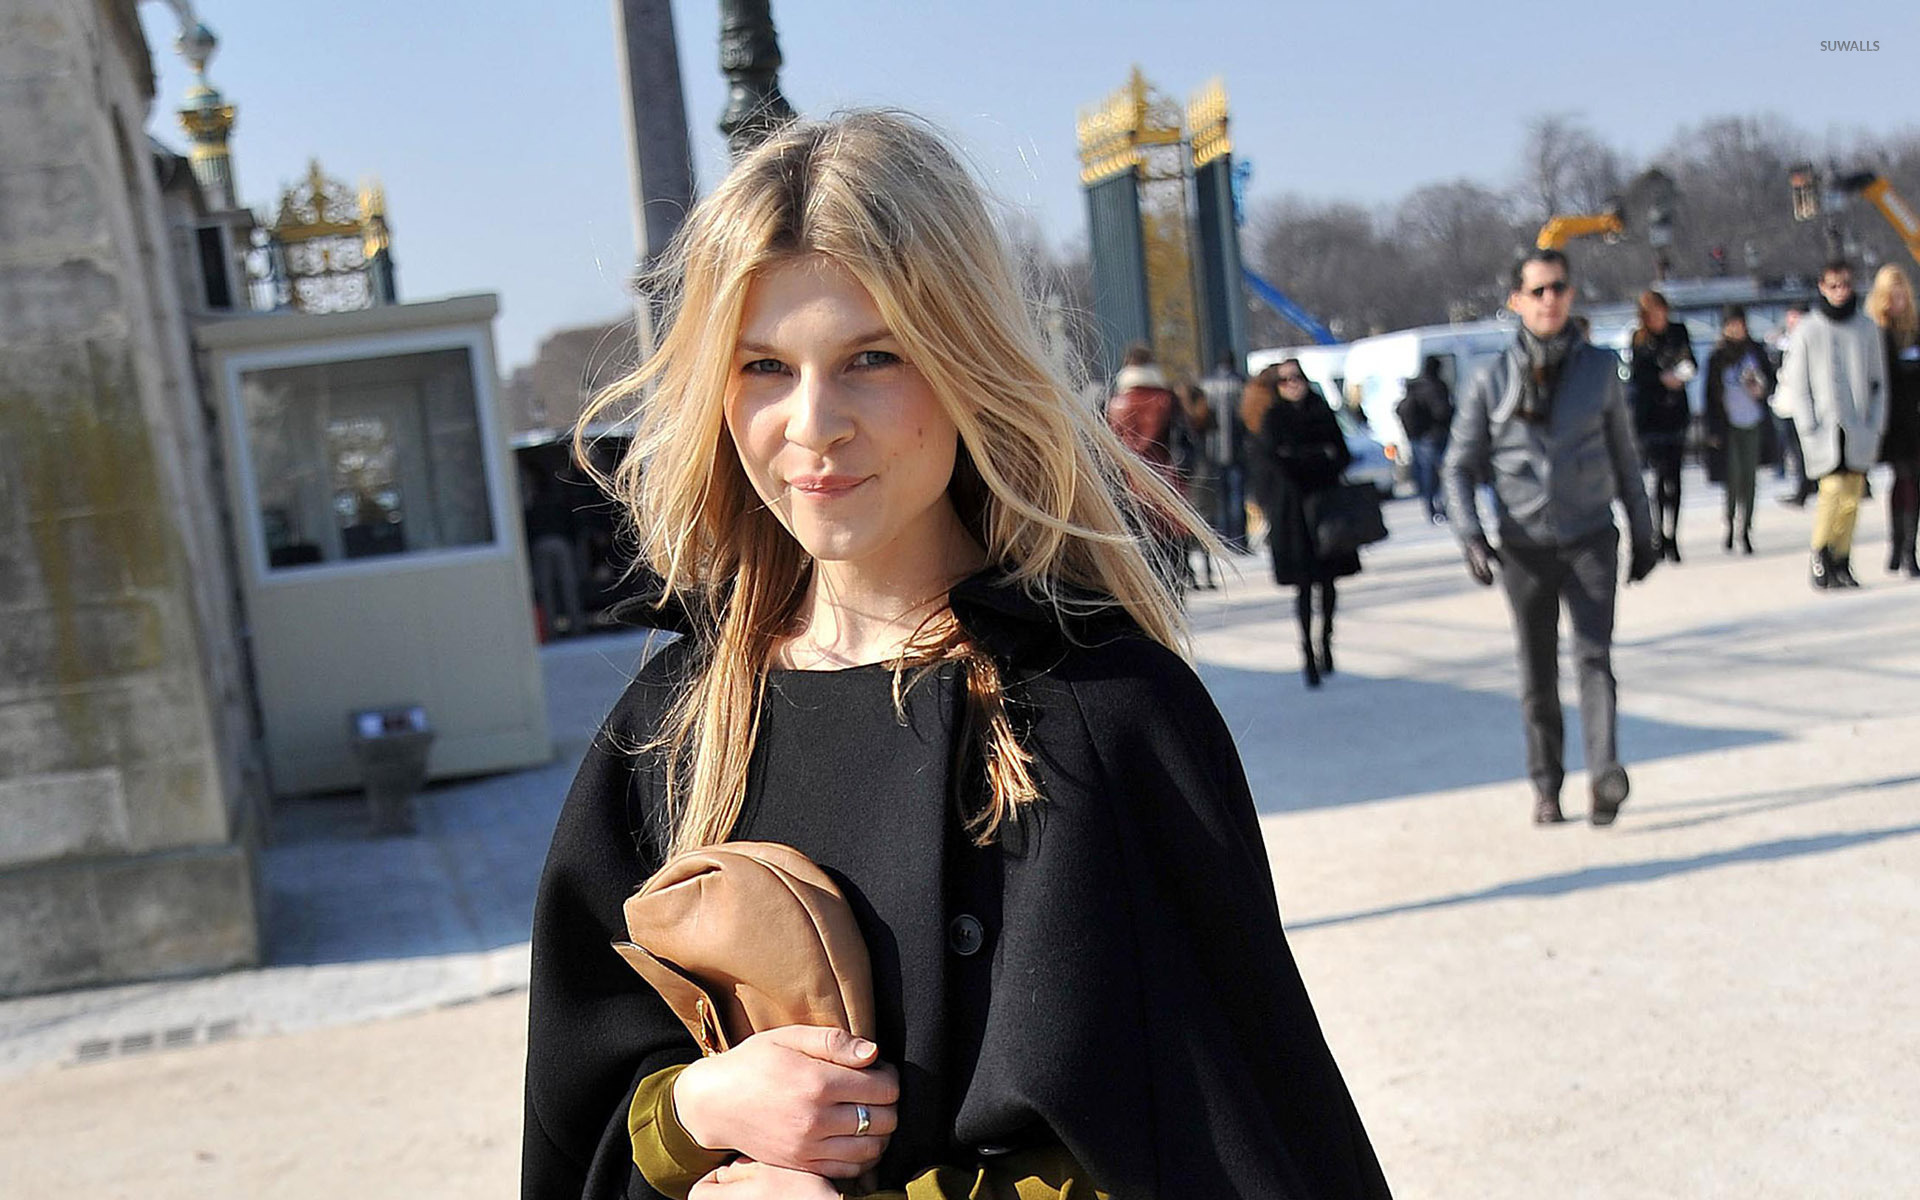 1920x1200 - Clemence Poesy Wallpapers 7